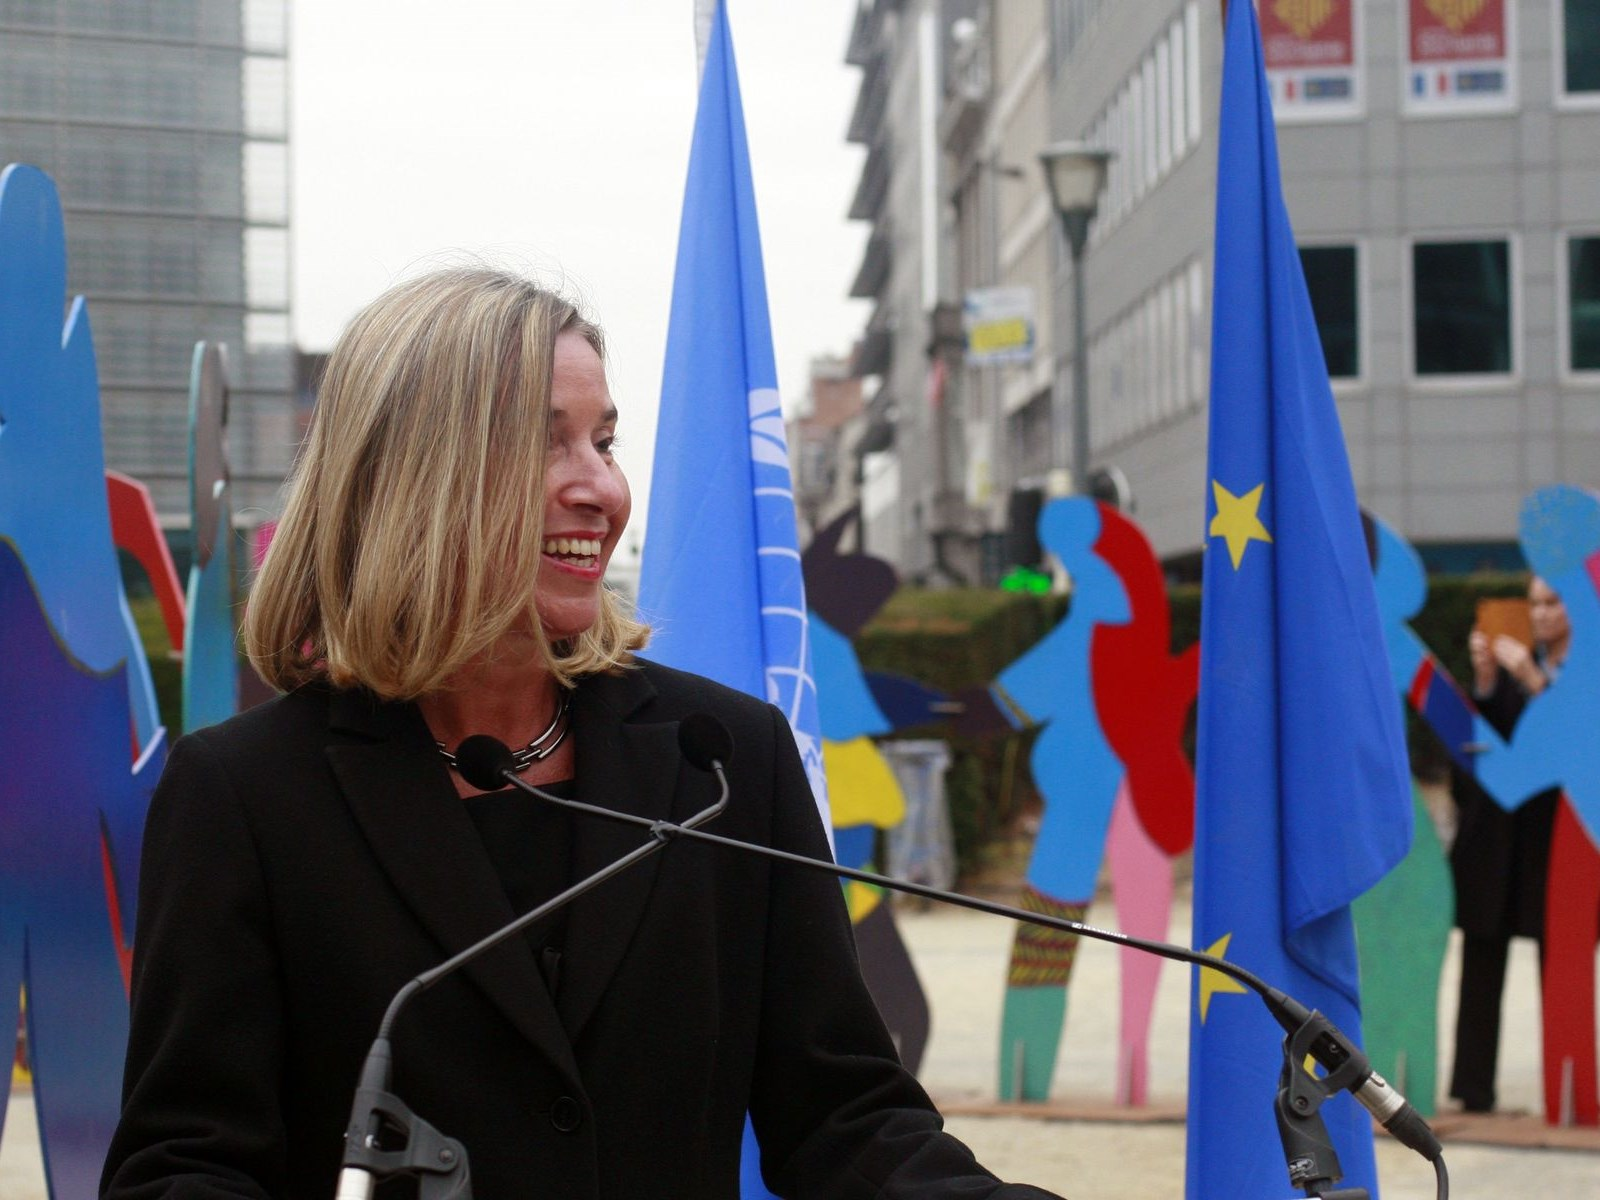 the speech of EU foreign policy chief Federica Mogherini